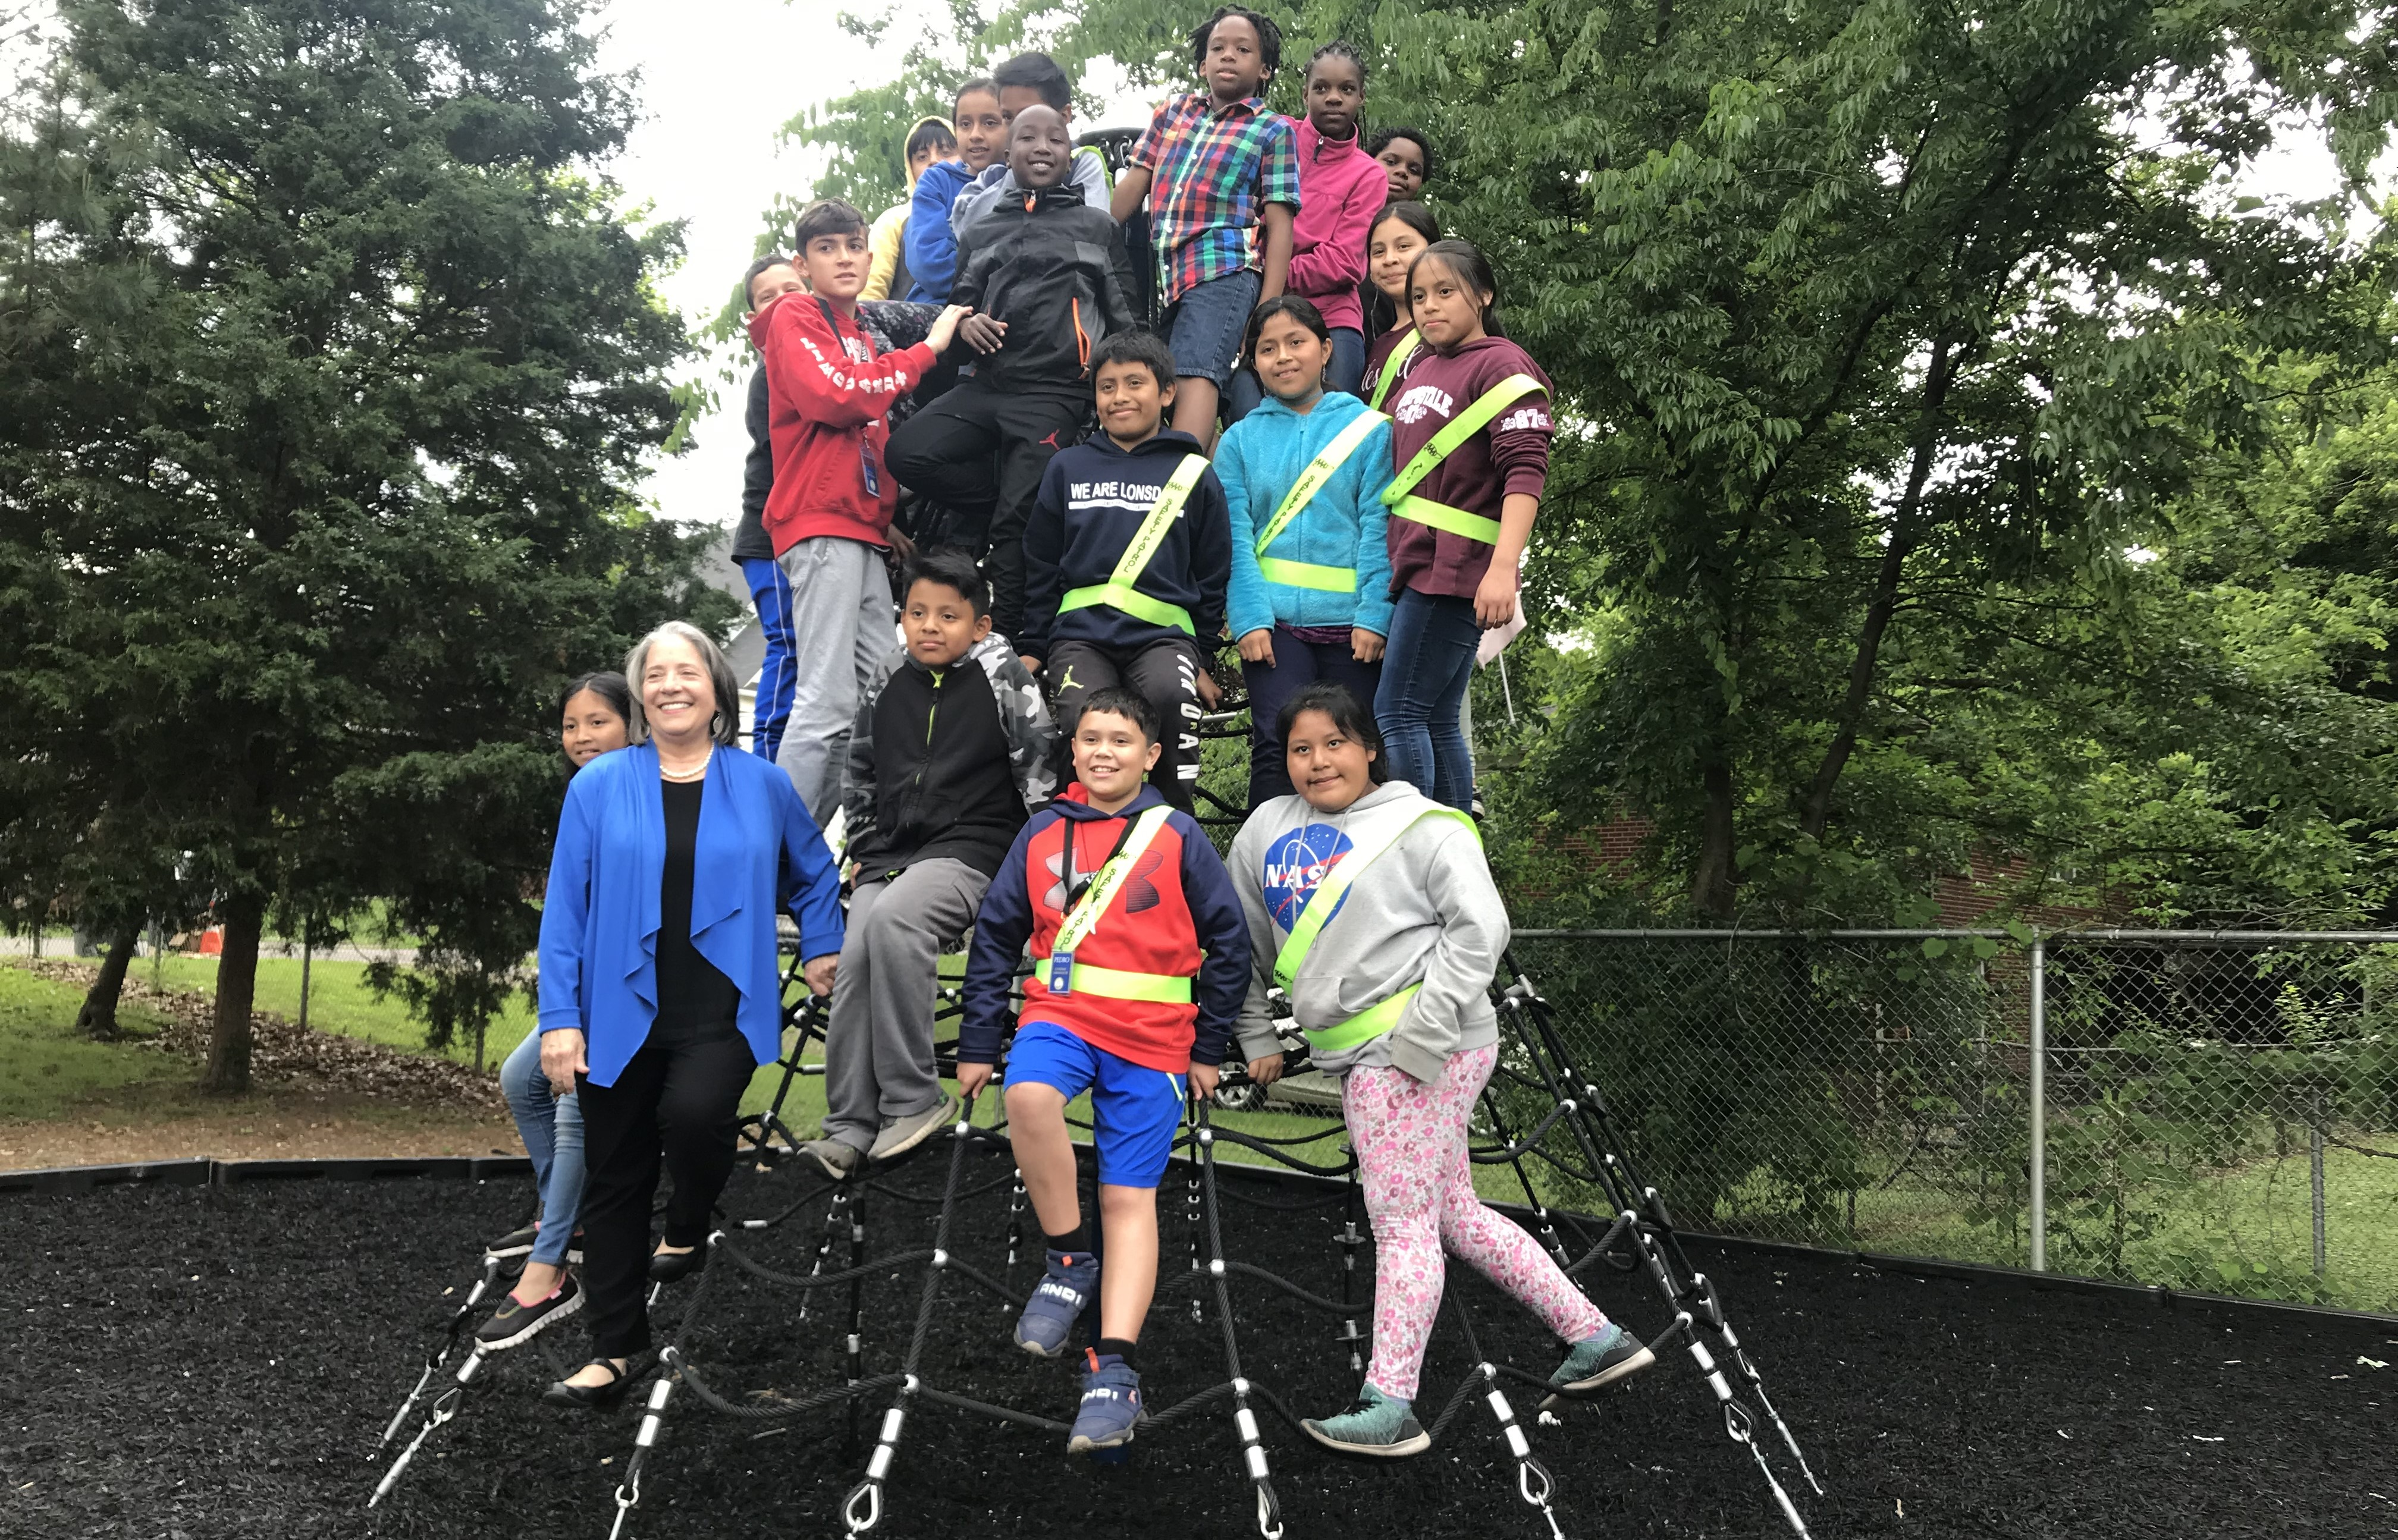 Knoxville Mayor Madeline Rogero poses with Lonsdale Elementary students on a new net climber that was recently installed at the school's playground.